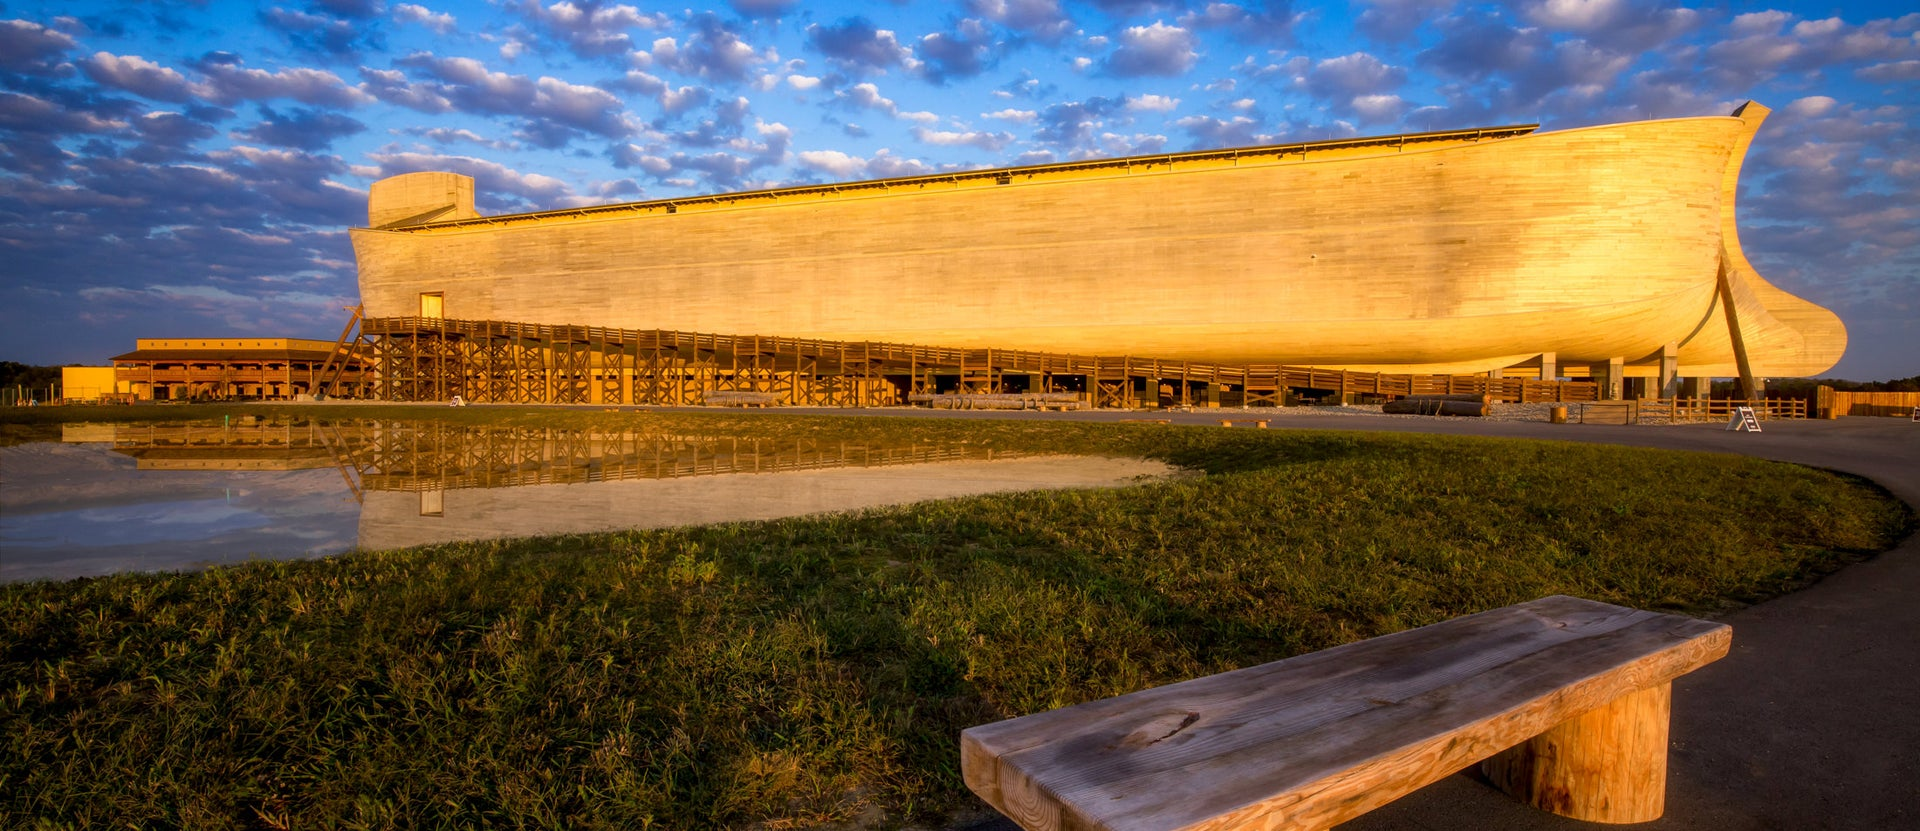 Noah's Ark, the centerpiece of The Ark Encounter, a tourist attraction in Kentucky.